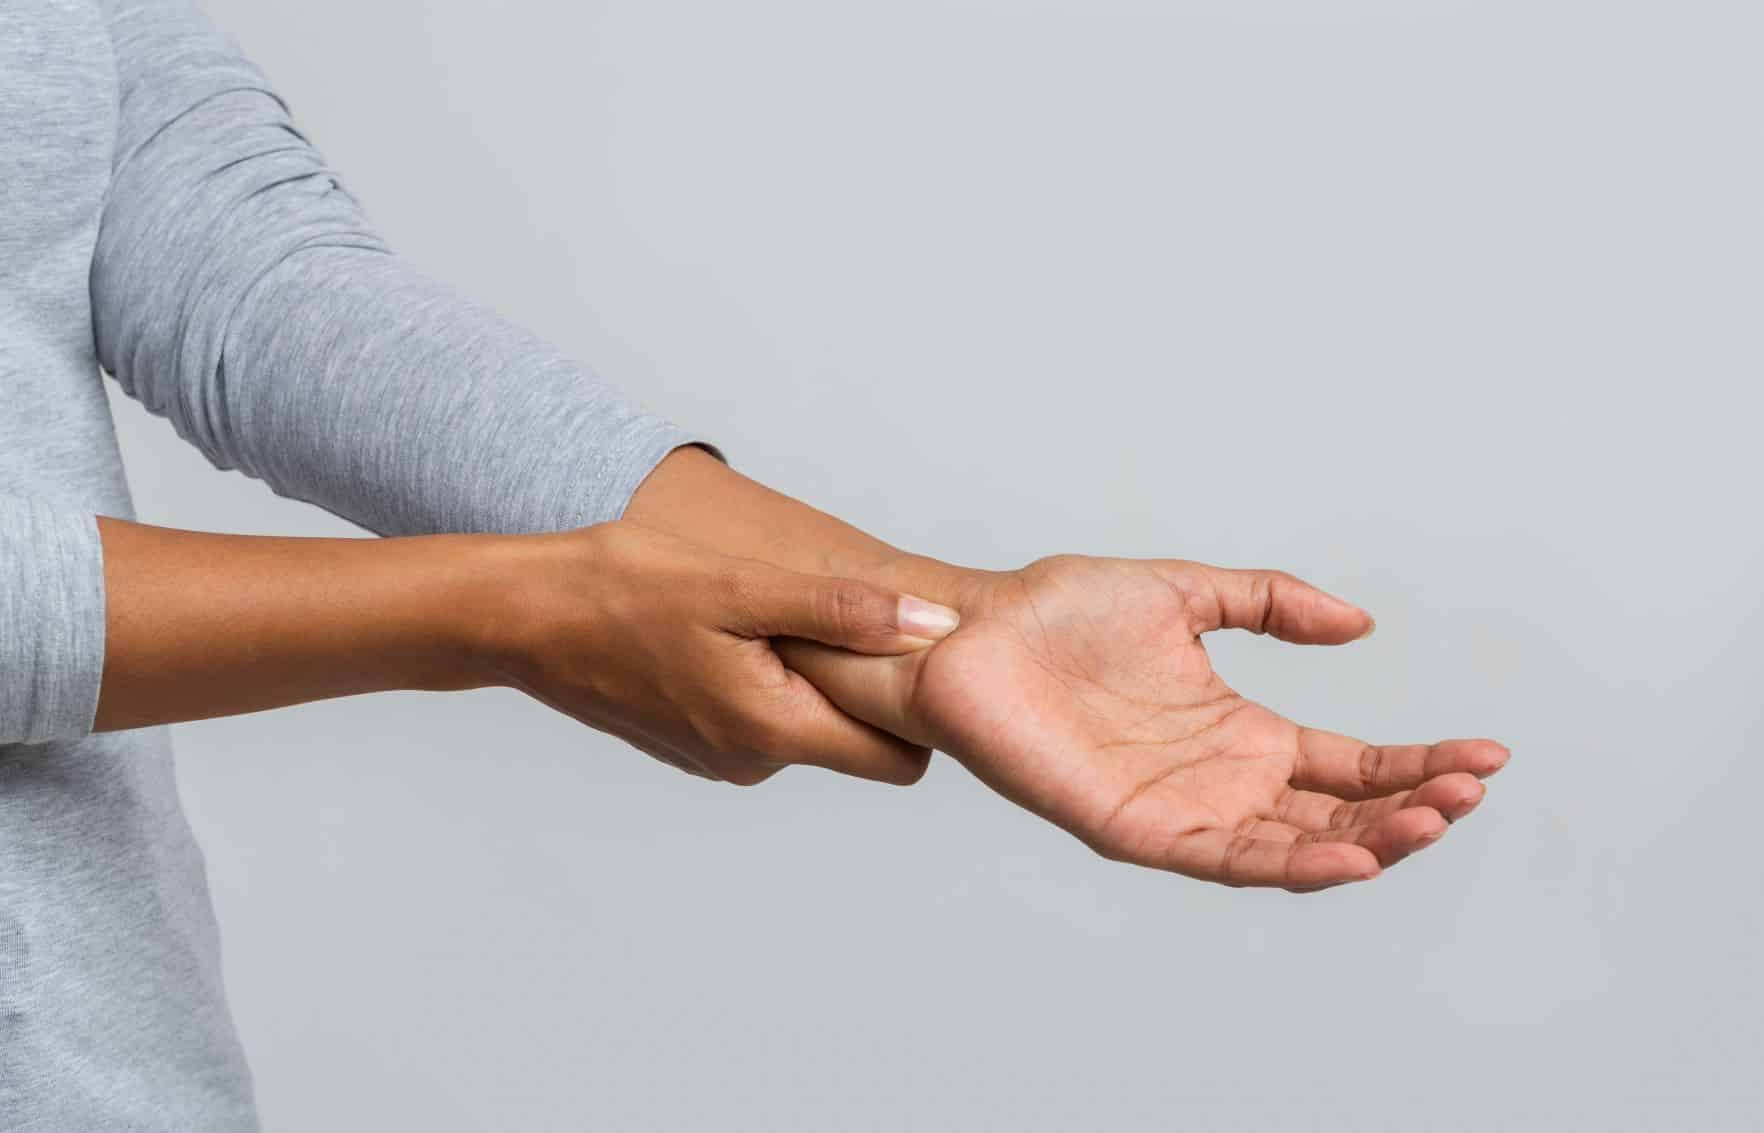 What You Need to Know About Wrist Arthroscopy